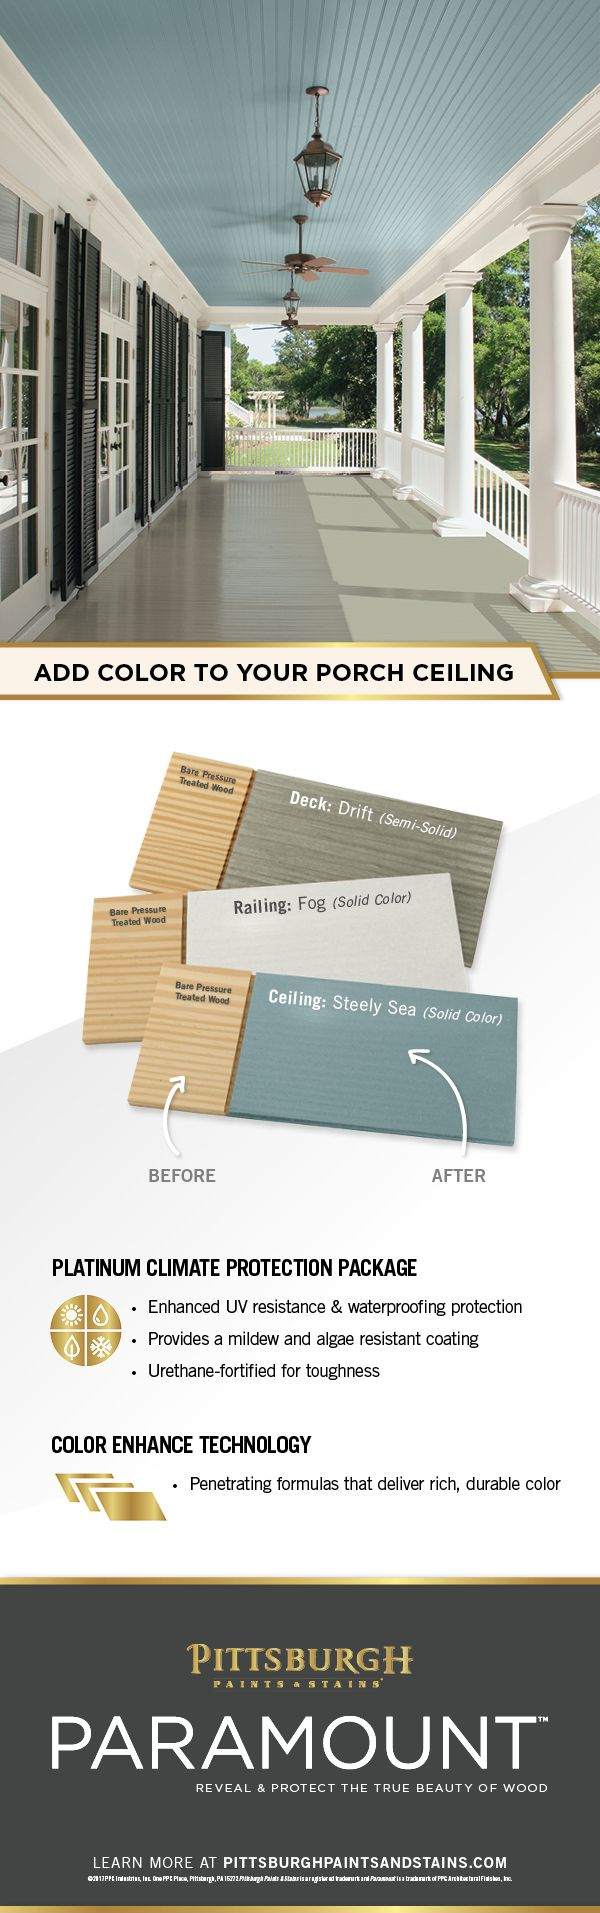 Minwax gel stain colors home depot wood stains color chart car tuning - Your Porch Ceiling Deserves Protection And A Pop Of Color